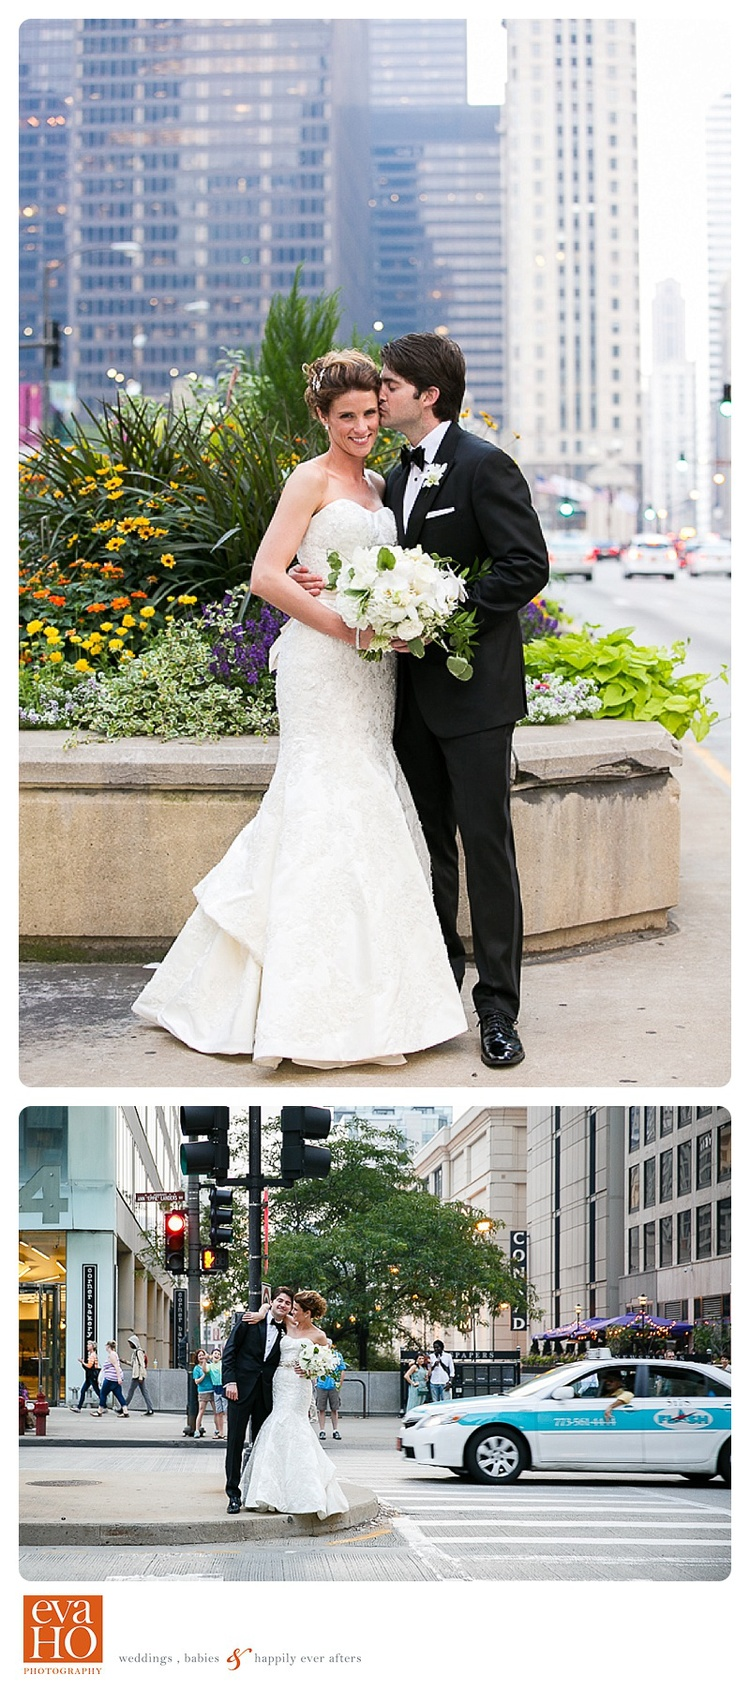 Newly wed take a stroll in downtown Chicago